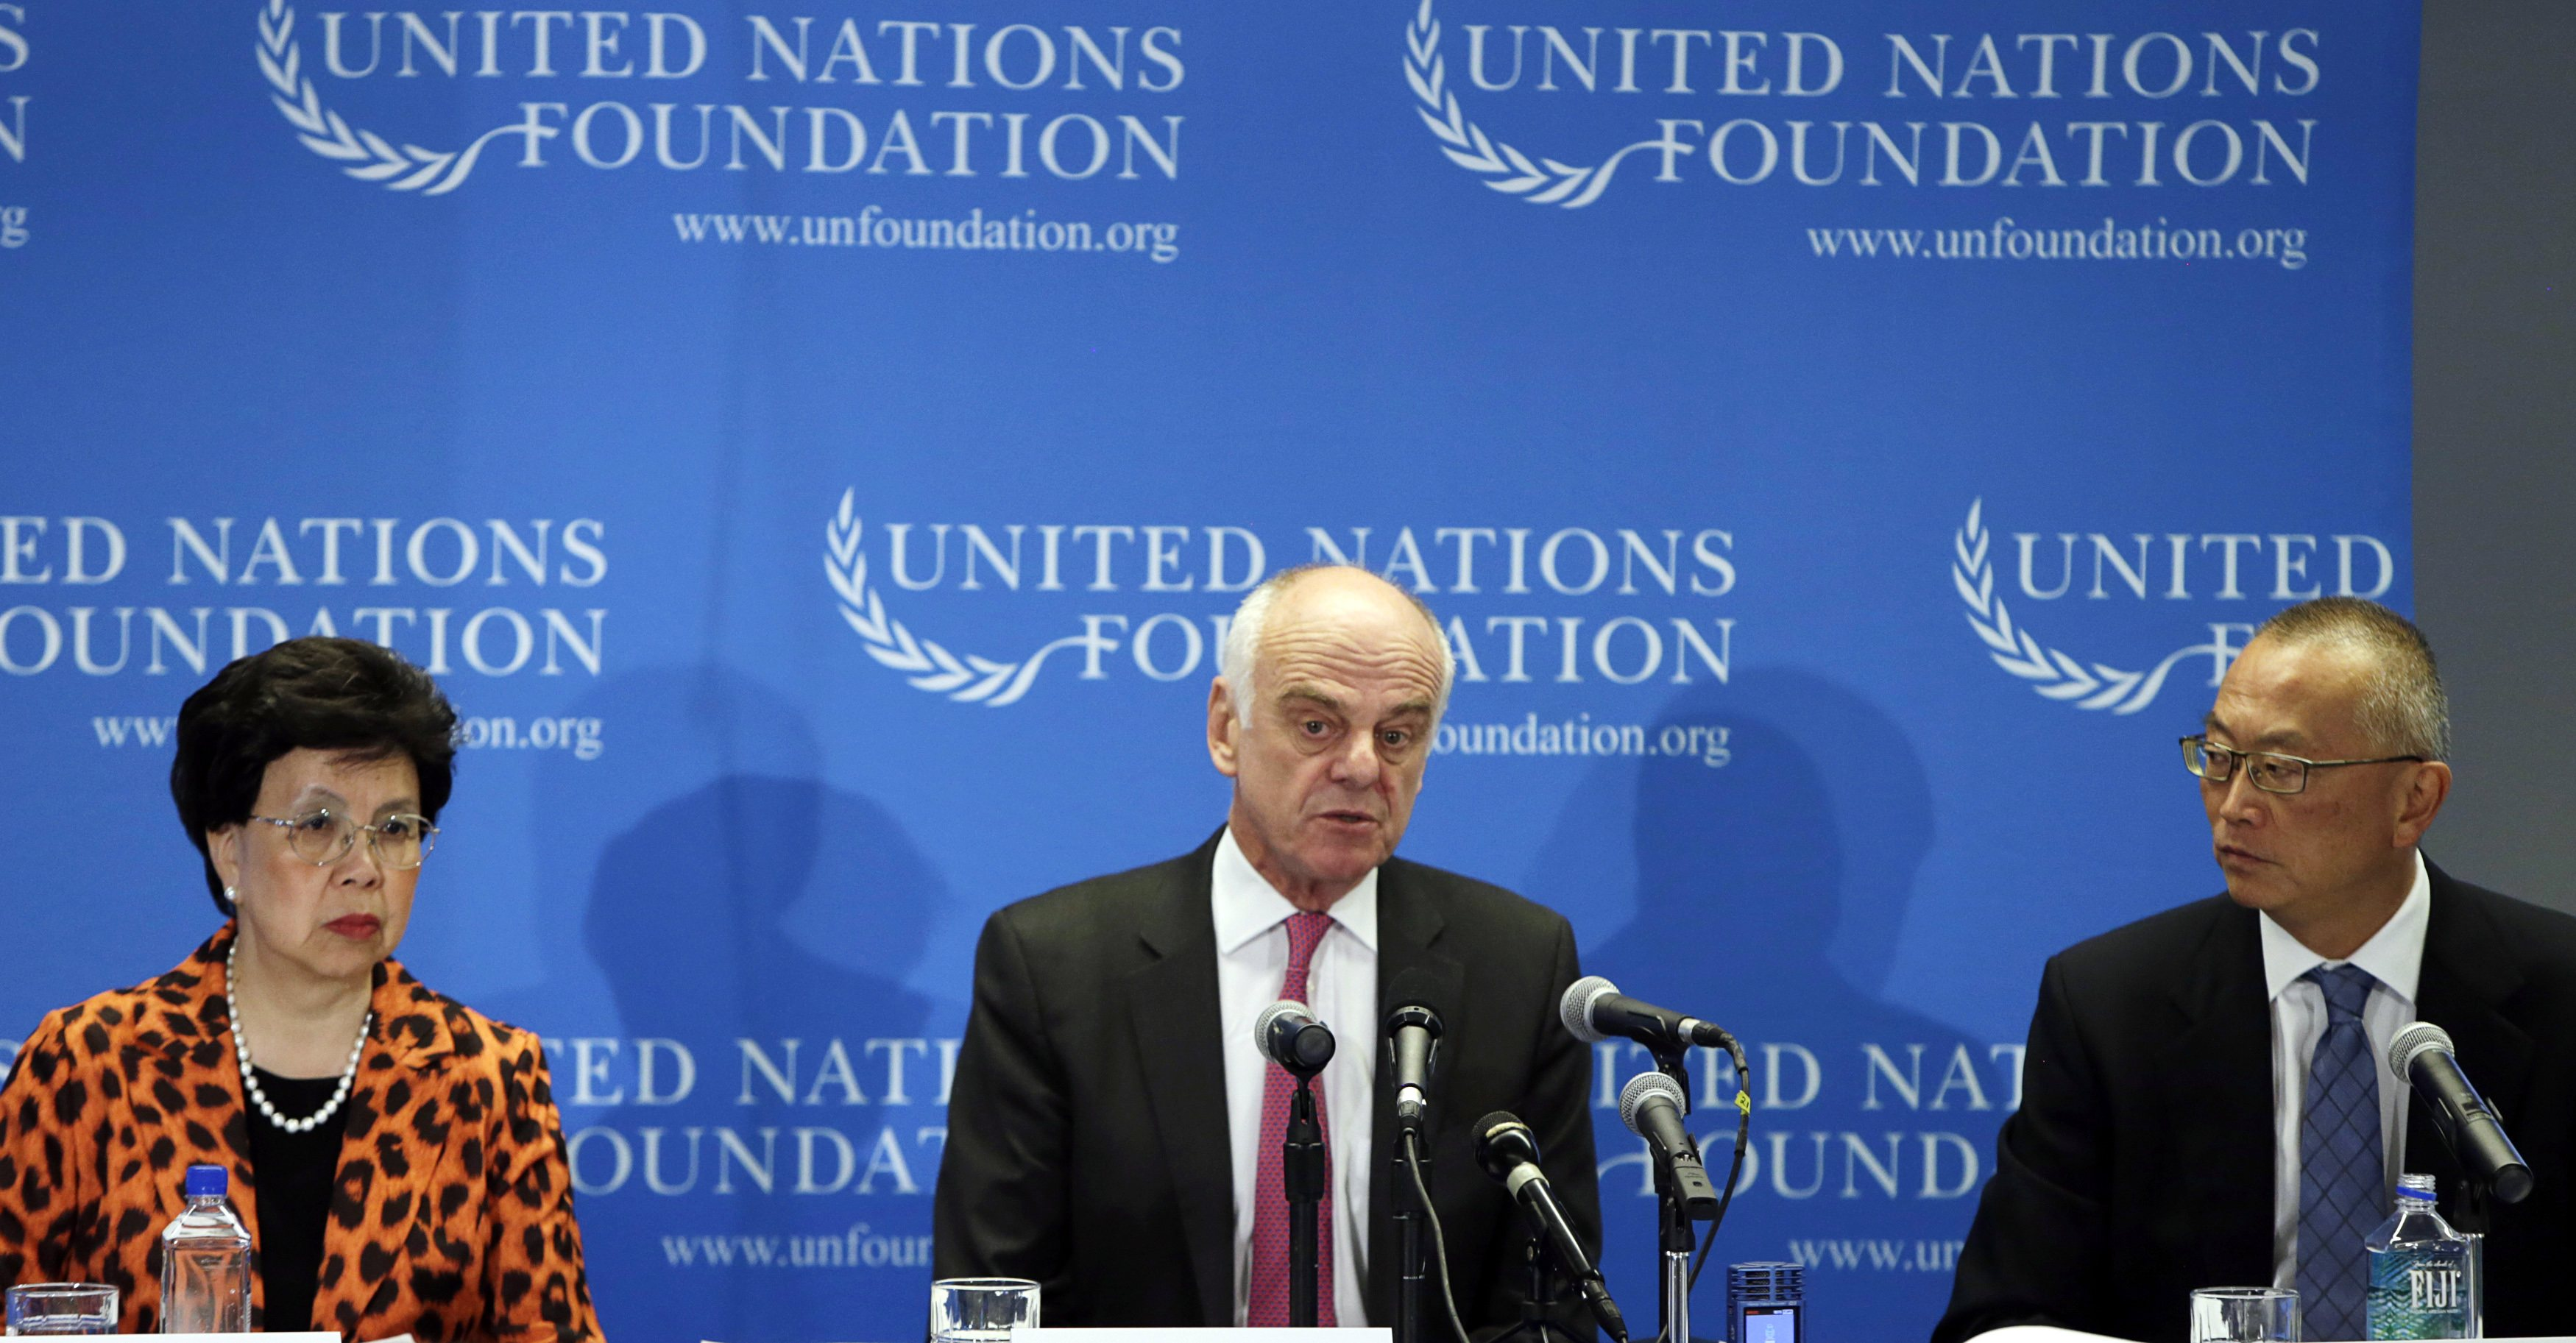 U.N. Says $600 Million Needed to Tackle Ebola as Deaths Top 1,900